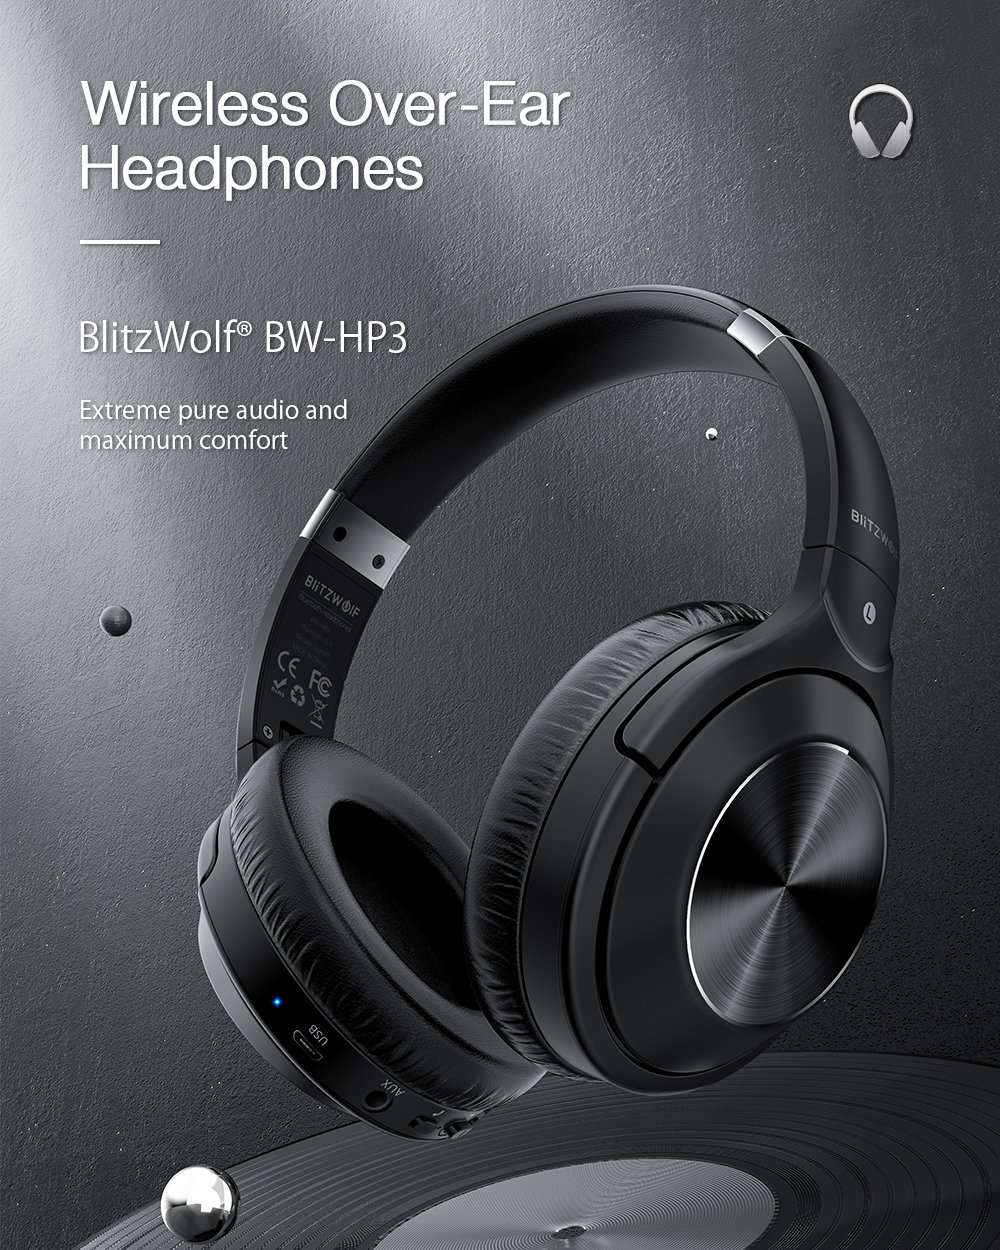 Blitwolf BW-HP3 headphone